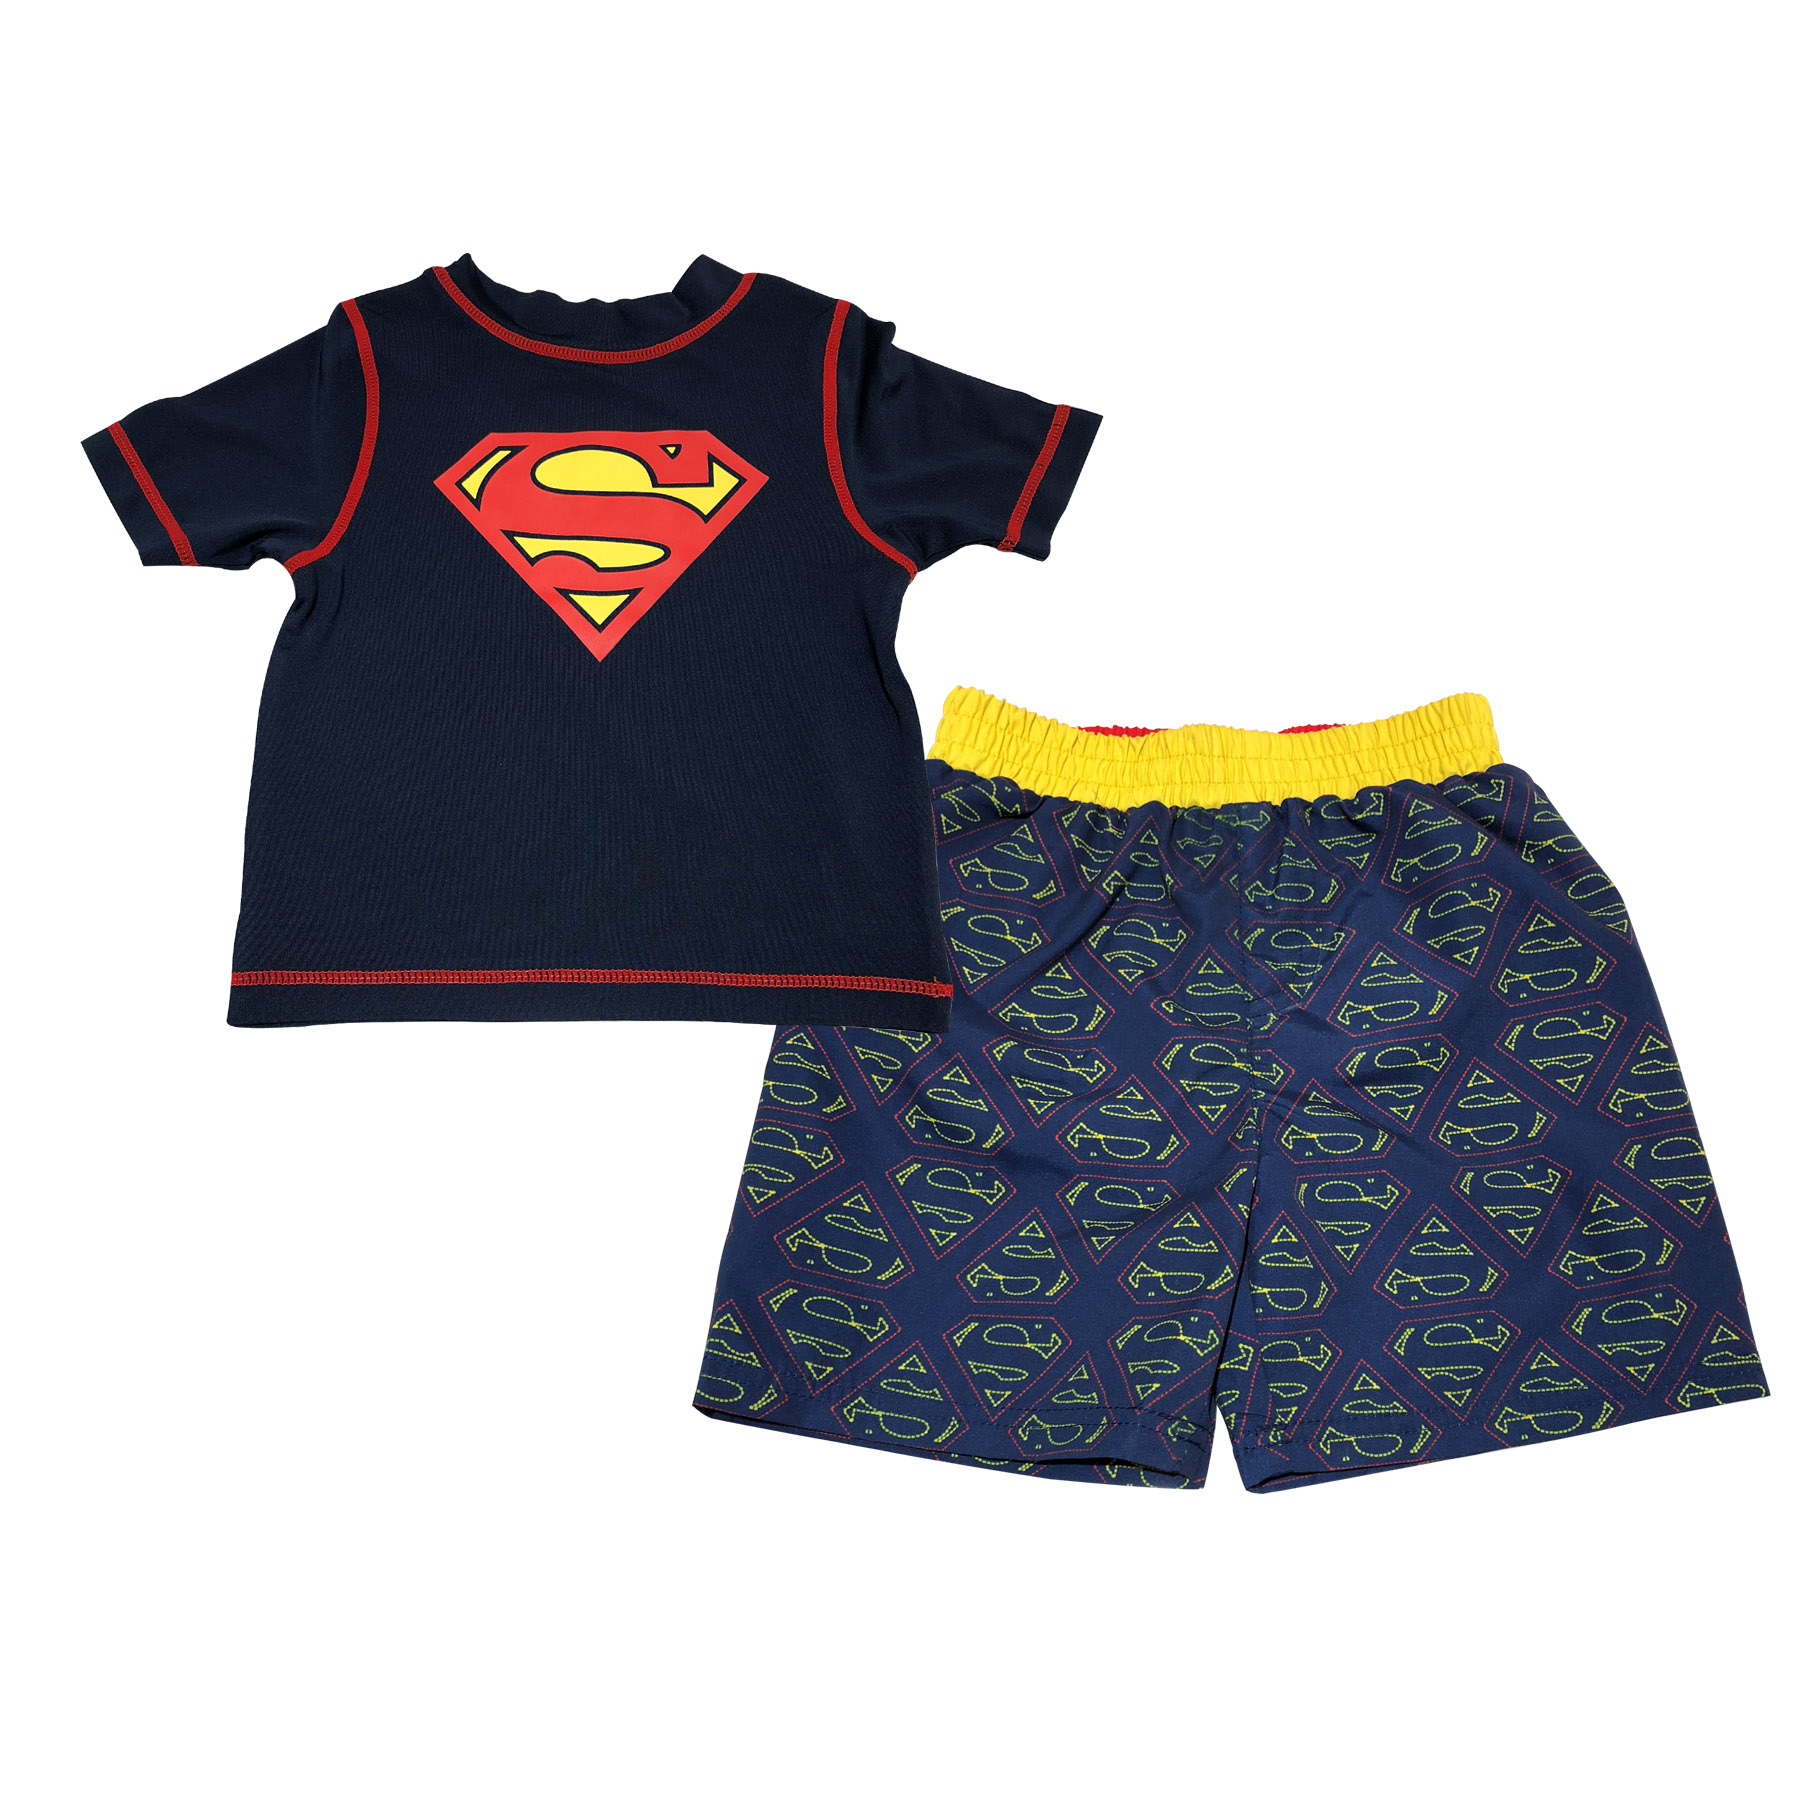 Baby Toddler Boy Rashguard Top & Swim Trunks, 2pc Set